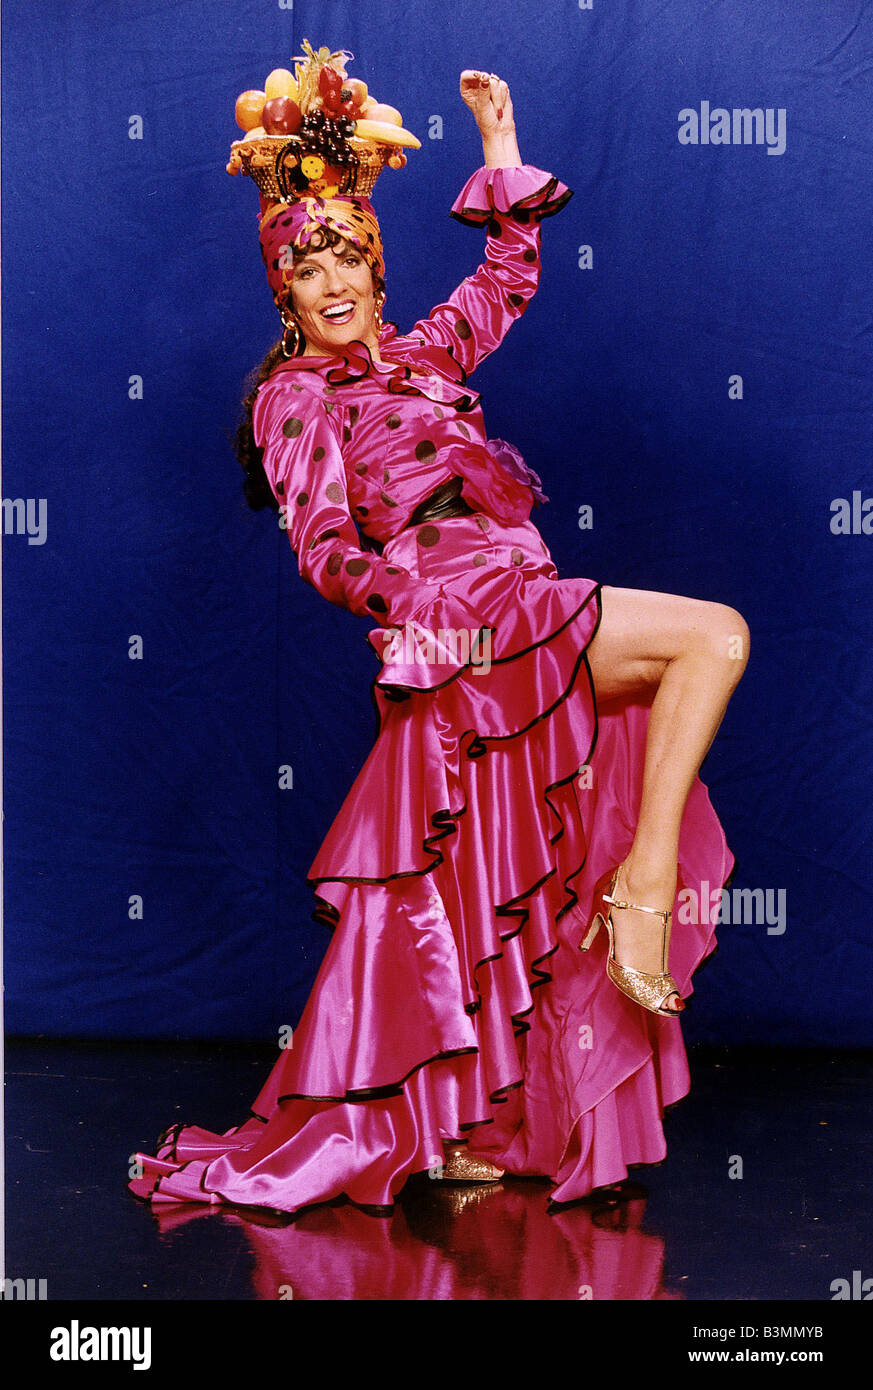 Esther Rantzen TV Presenter for BBC series Hearts Of Gold Stock Photo